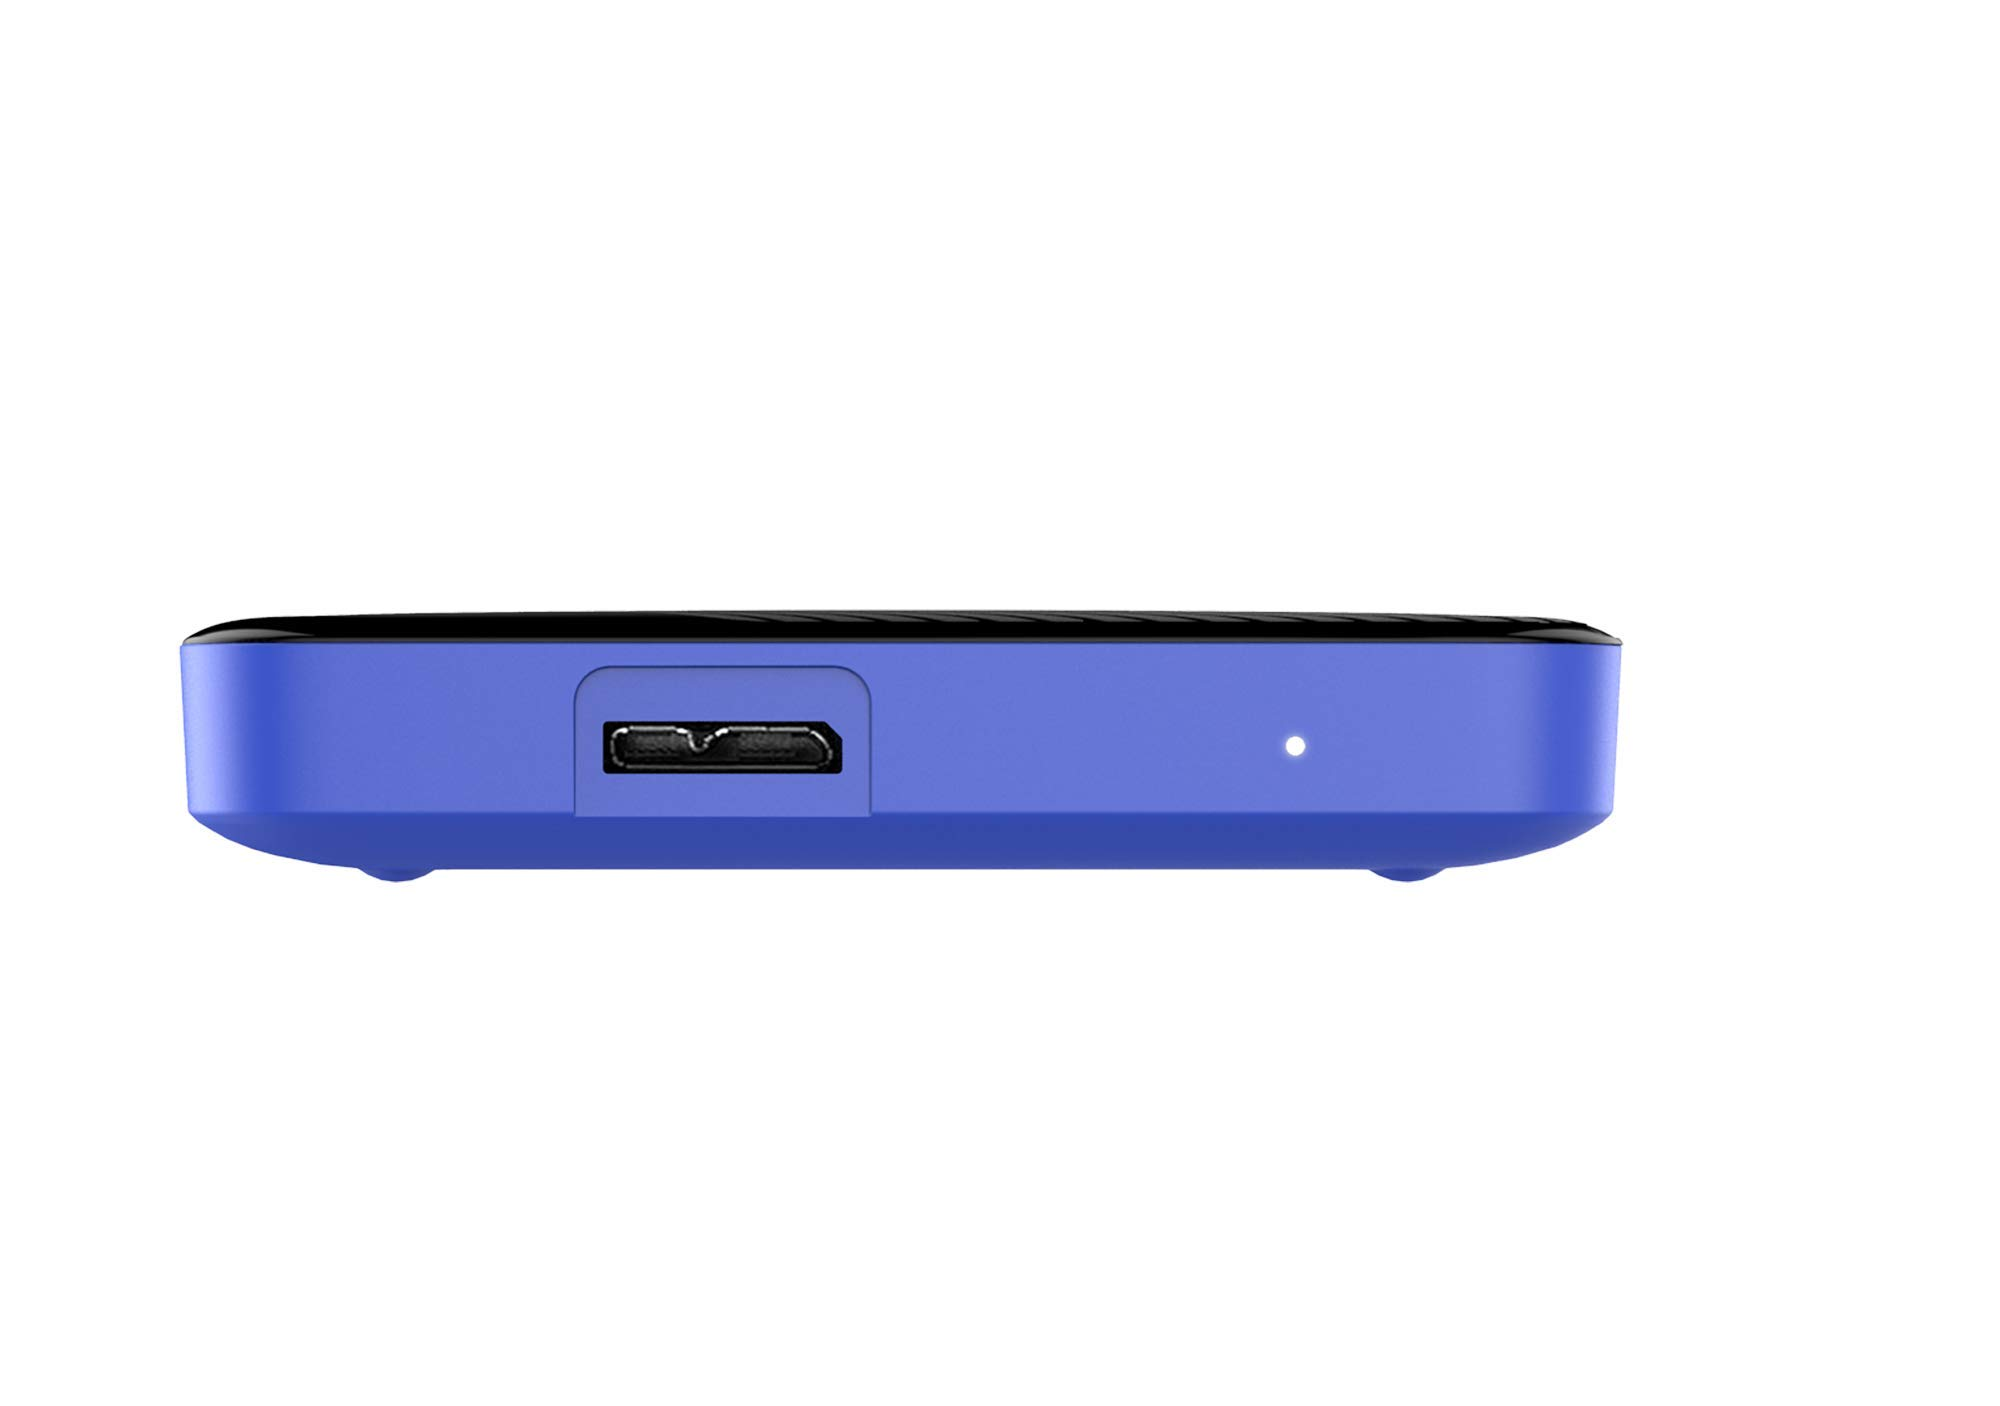 WD 4TB Gaming Drive Works with Playstation 4 Portable External Hard Drive - WDBM1M0040BBK-WESN by Western Digital (Image #5)